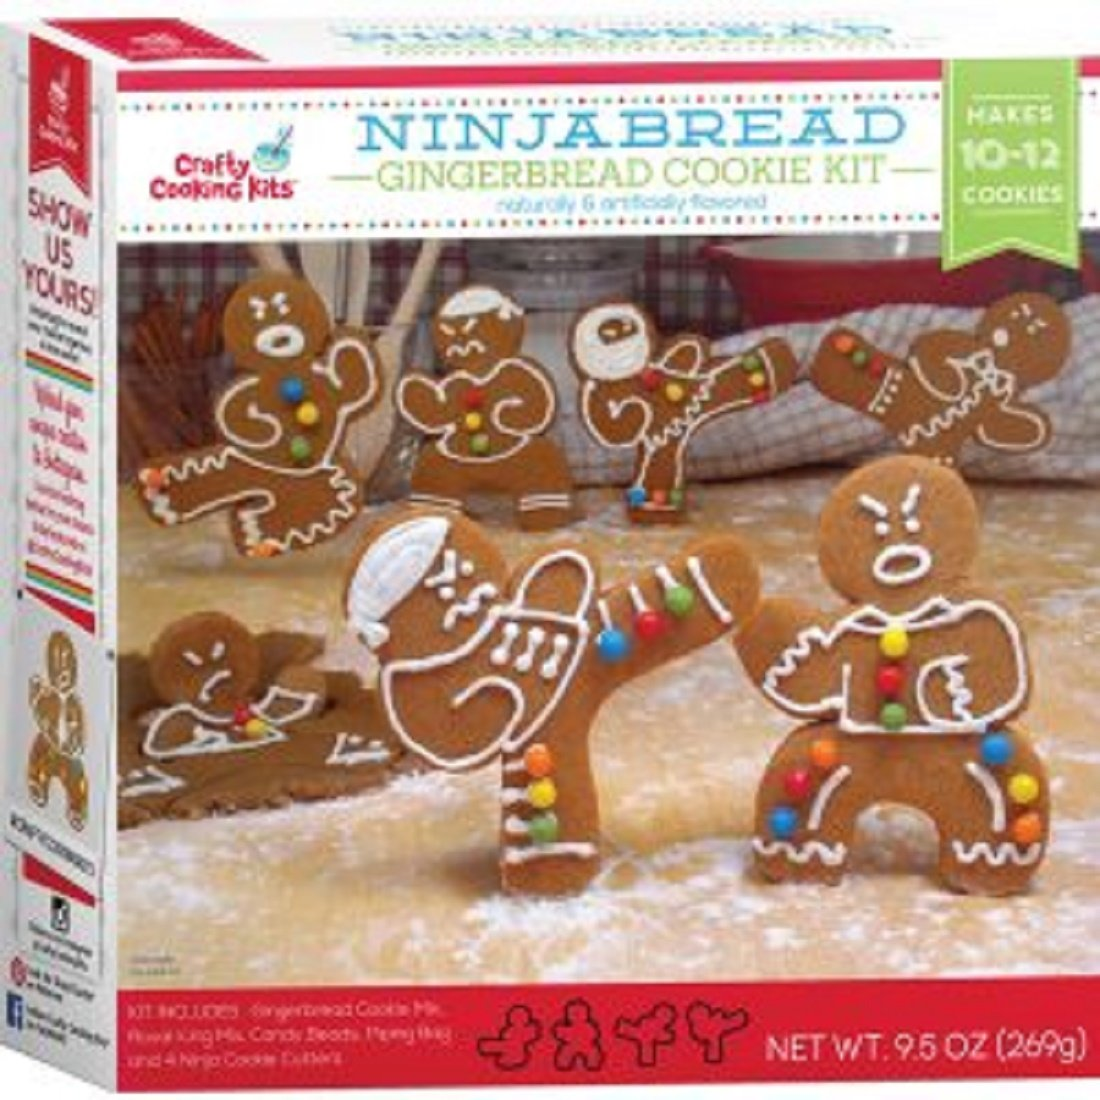 Ninjabread Ninja Gingerbread Cookie Kit